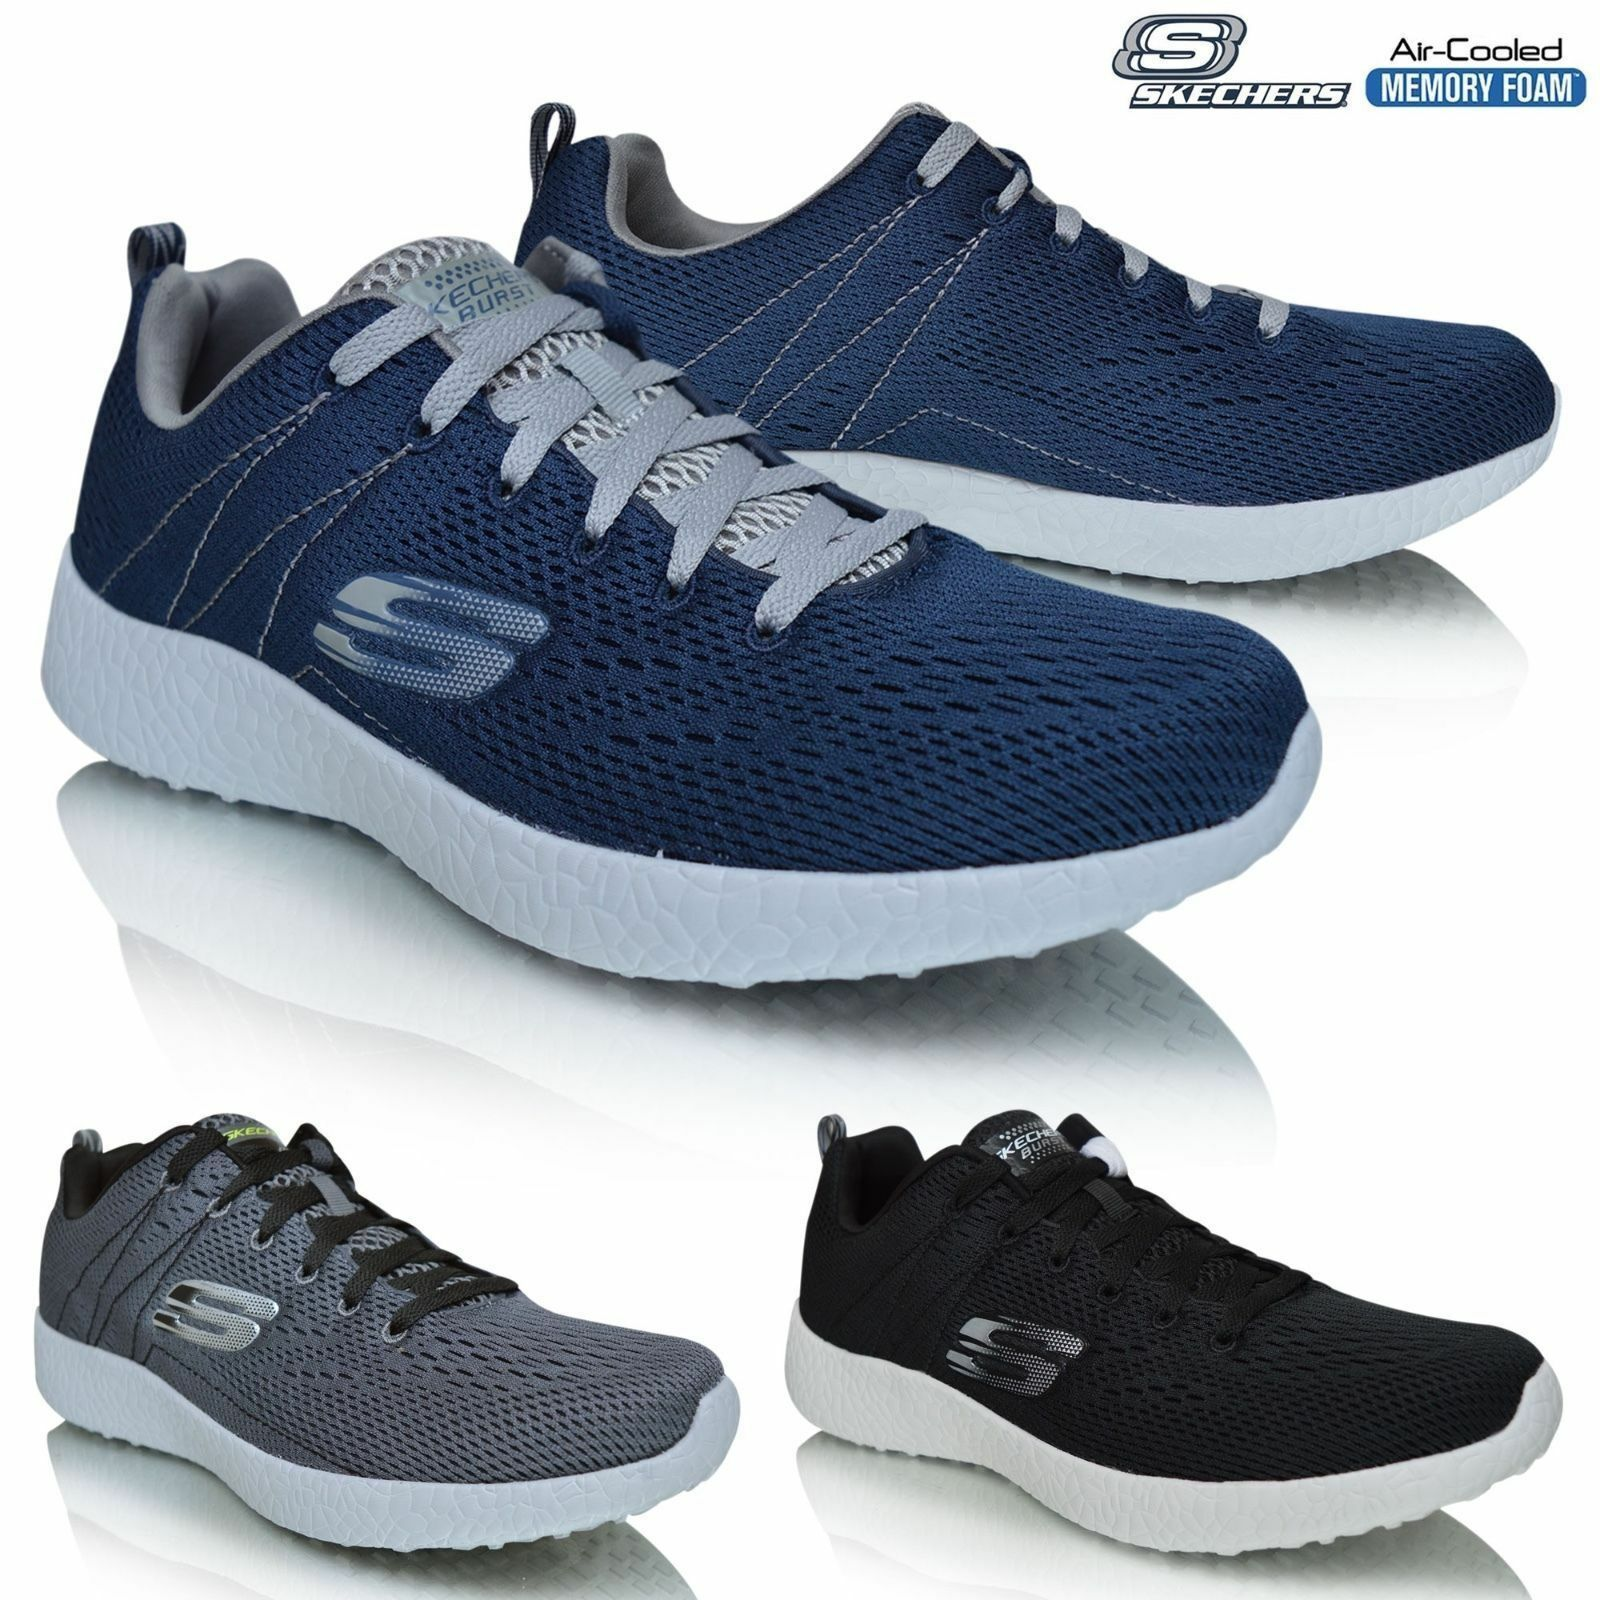 MENS SKECHERS BURST SECOND WIND TRAINERS BLACK / NAVY & CHARCOAL GREY SIZE 7-13